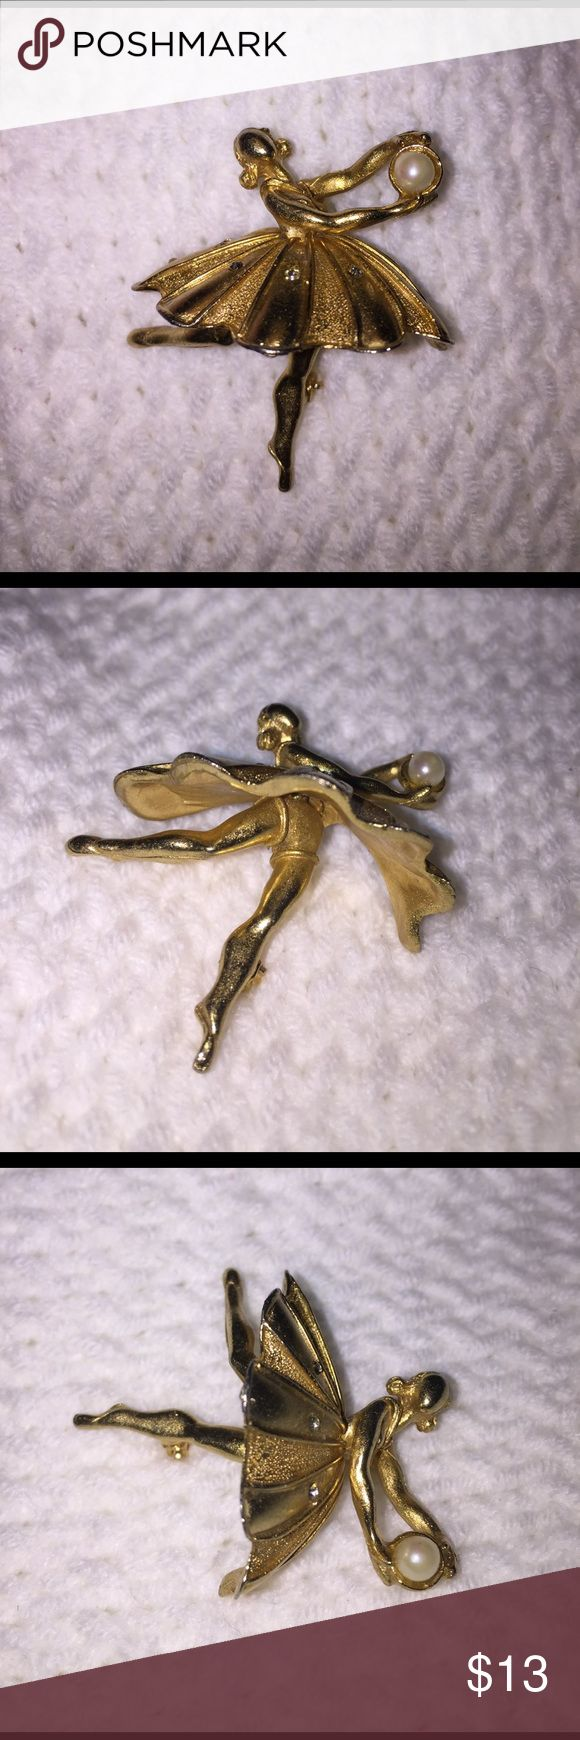 """VTG 3D Ballerina Gold Pin Brooch Rhinestones Pearl A beautiful vintage ballerina pin brooch - style is similar to Trifari pieces of same era. Very well made, like a small figurine on a pin back. Graceful arms hold a faux pearl, legs are extended and skirt - accented with clear crystal rhinestones - flairs out from legs! All elegance and grace! Size: 1 5/8"""" x 1 3/8"""". Mark: Unbranded. Item in excellent pre-owned, used vintage condition. Please view all photos - these are part of the…"""